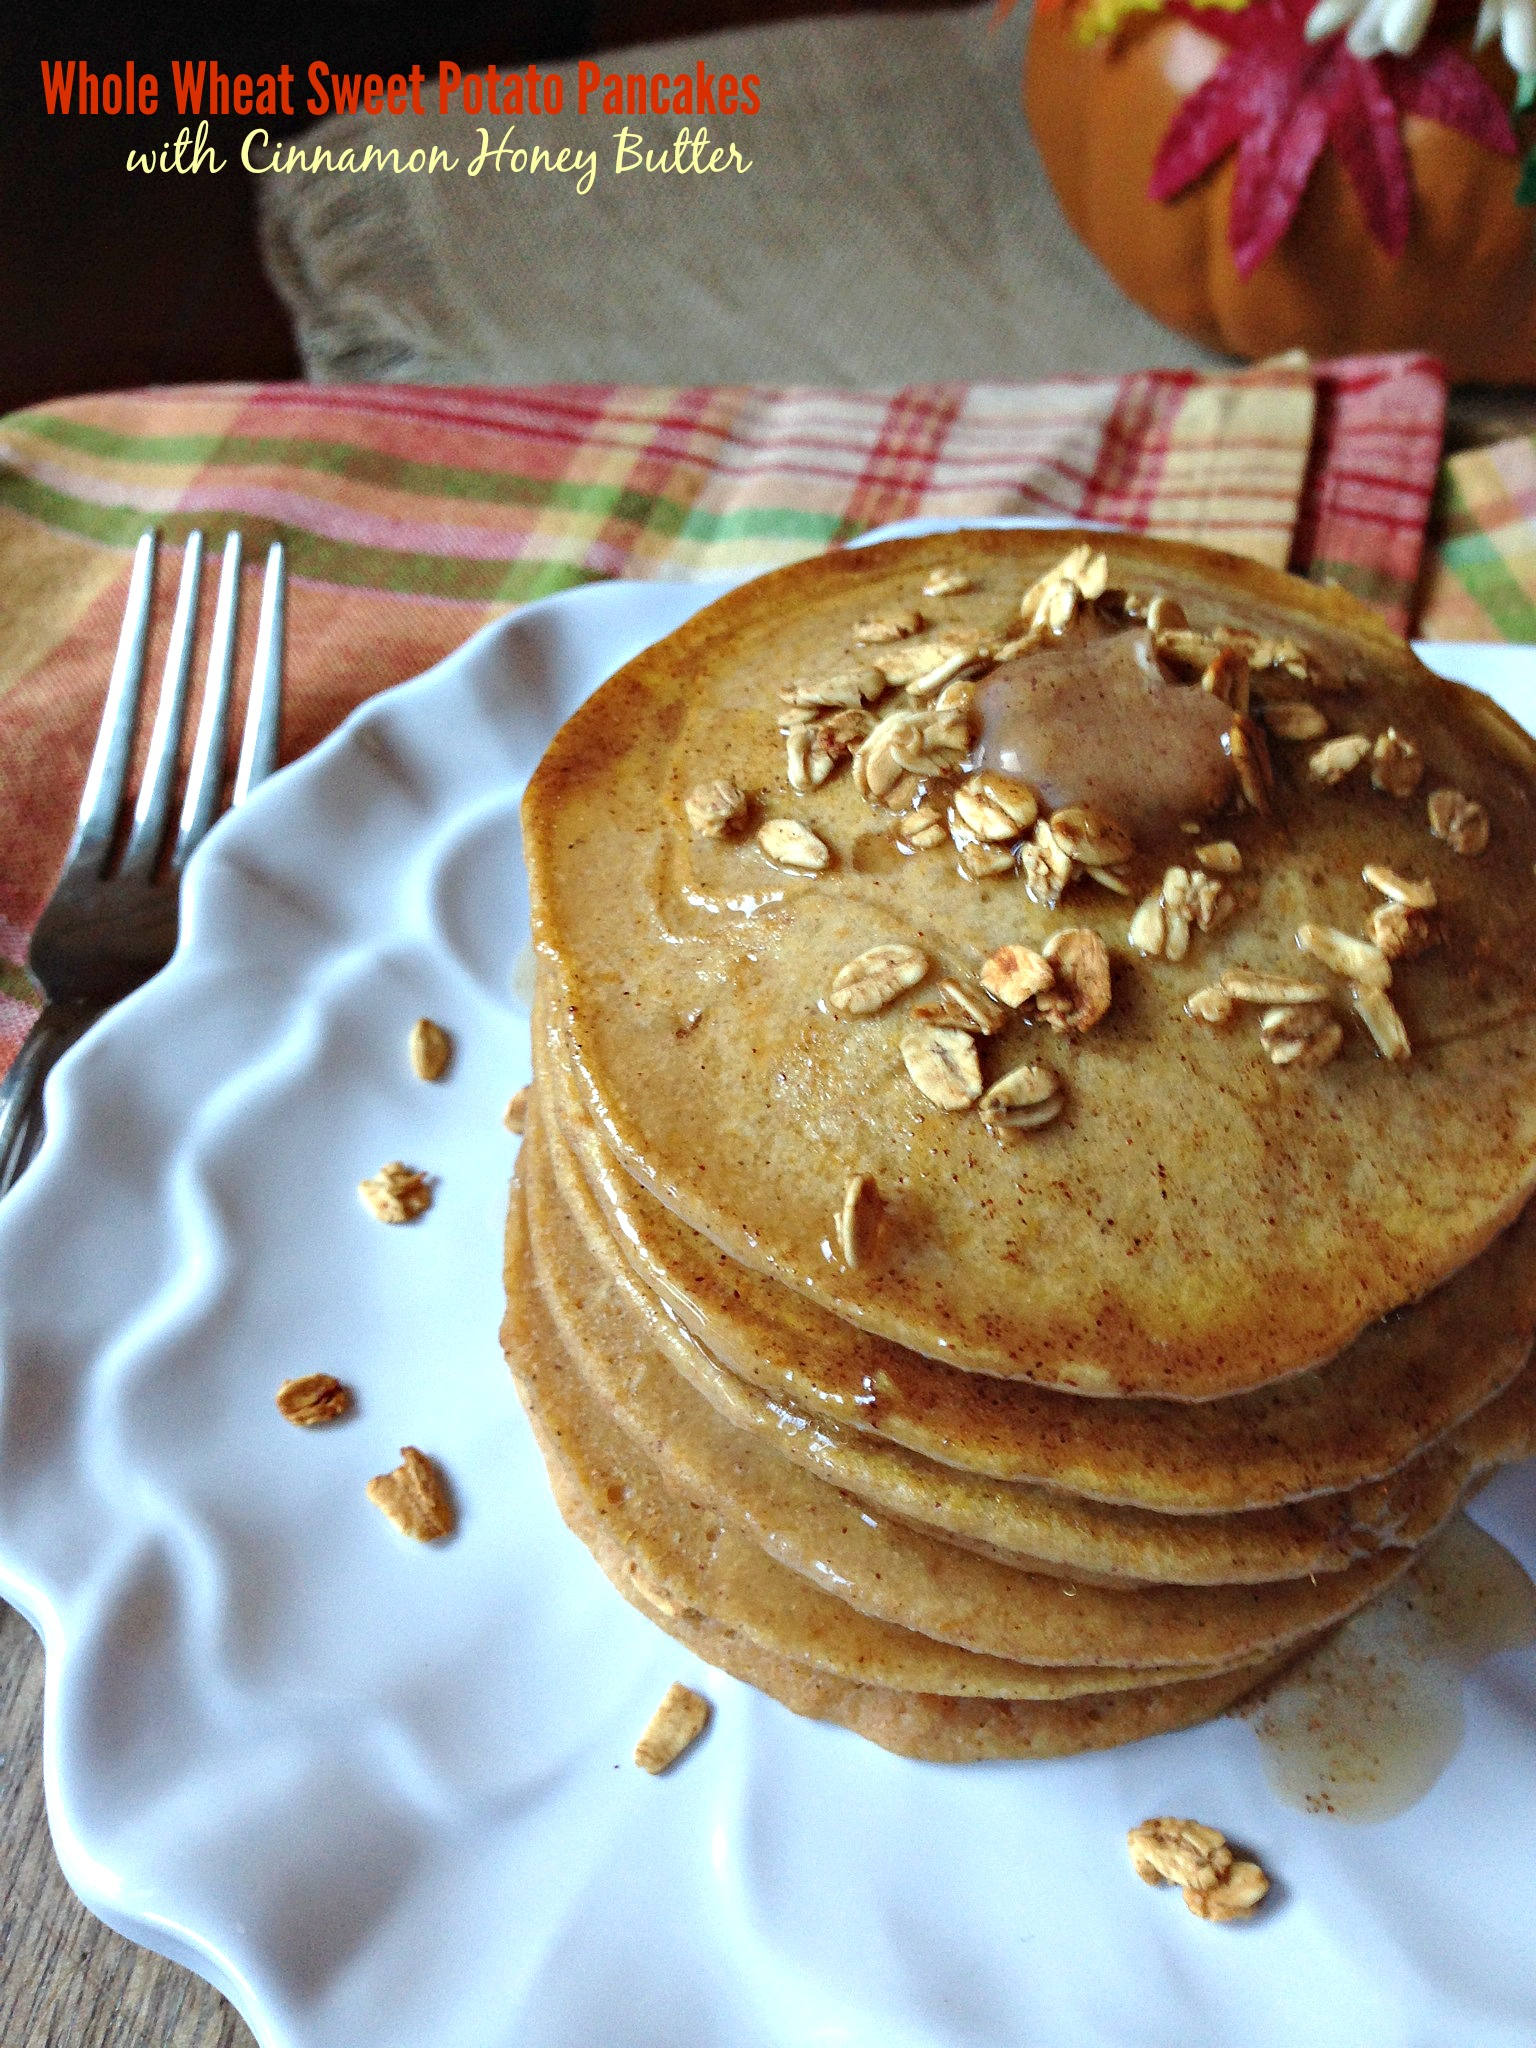 Whole Wheat Sweet Potato Pancakes with Cinnamon Honey Butter